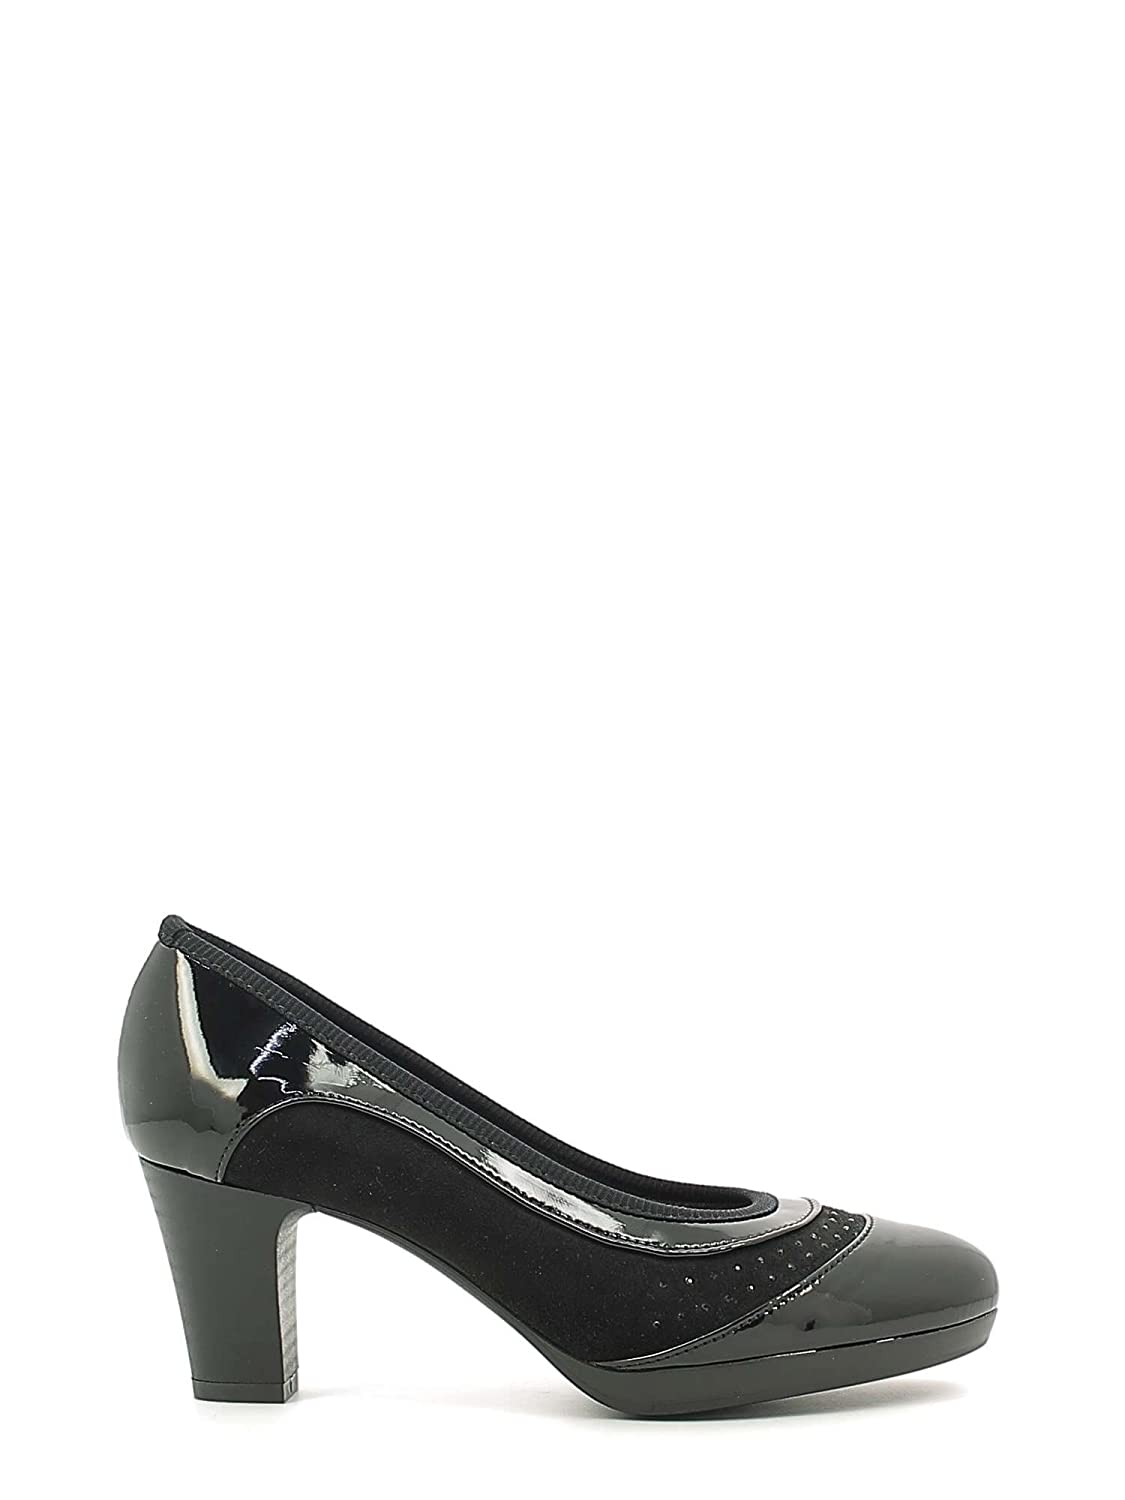 Grace Shoes 311372 Zapatos Mujeres